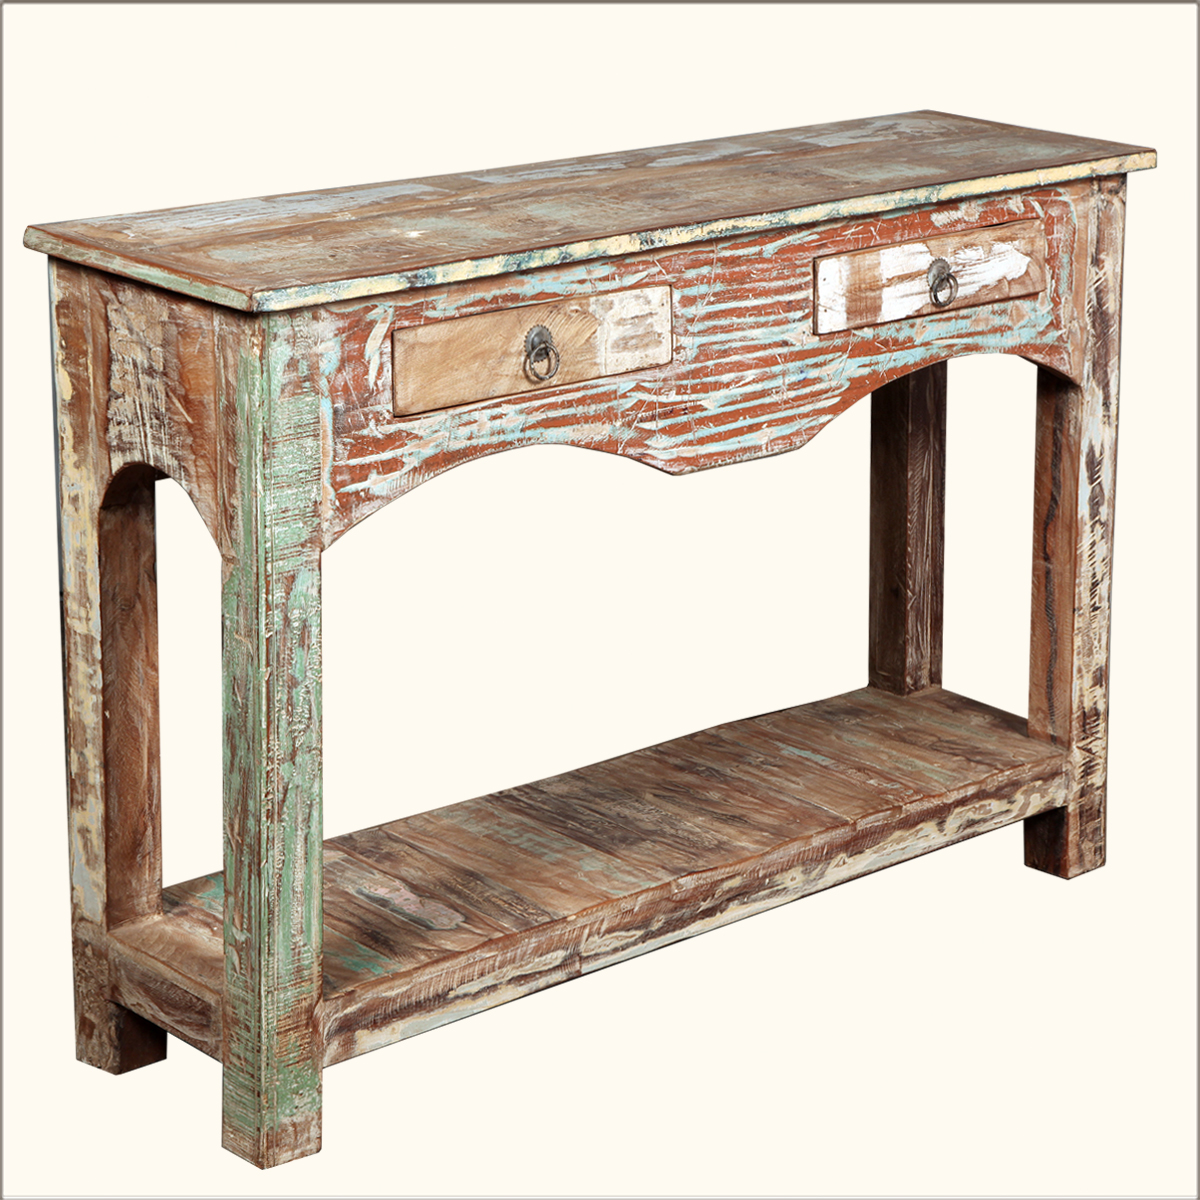 Distressed Reclaimed Wood 2 Drawer Rustic Console Hall